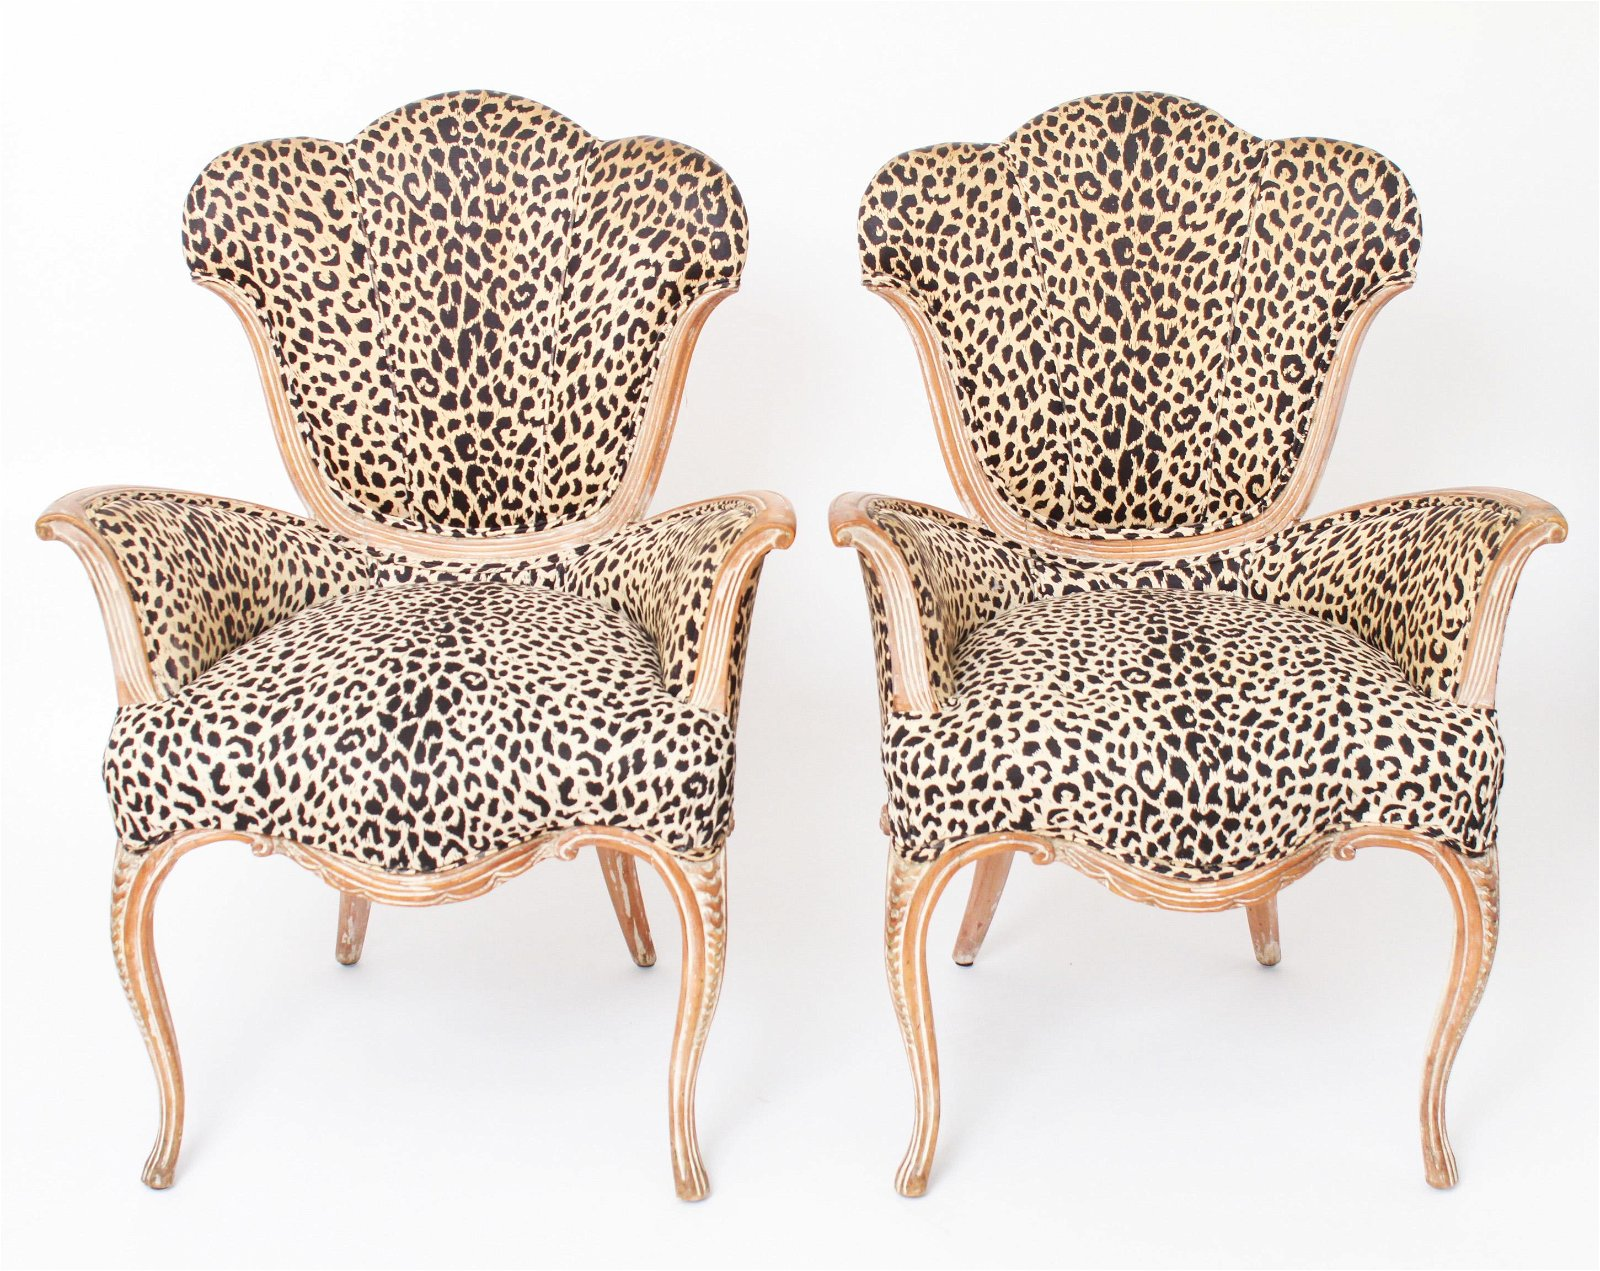 Art Deco w Leopard-Print Carved Wood Chairs, Pair